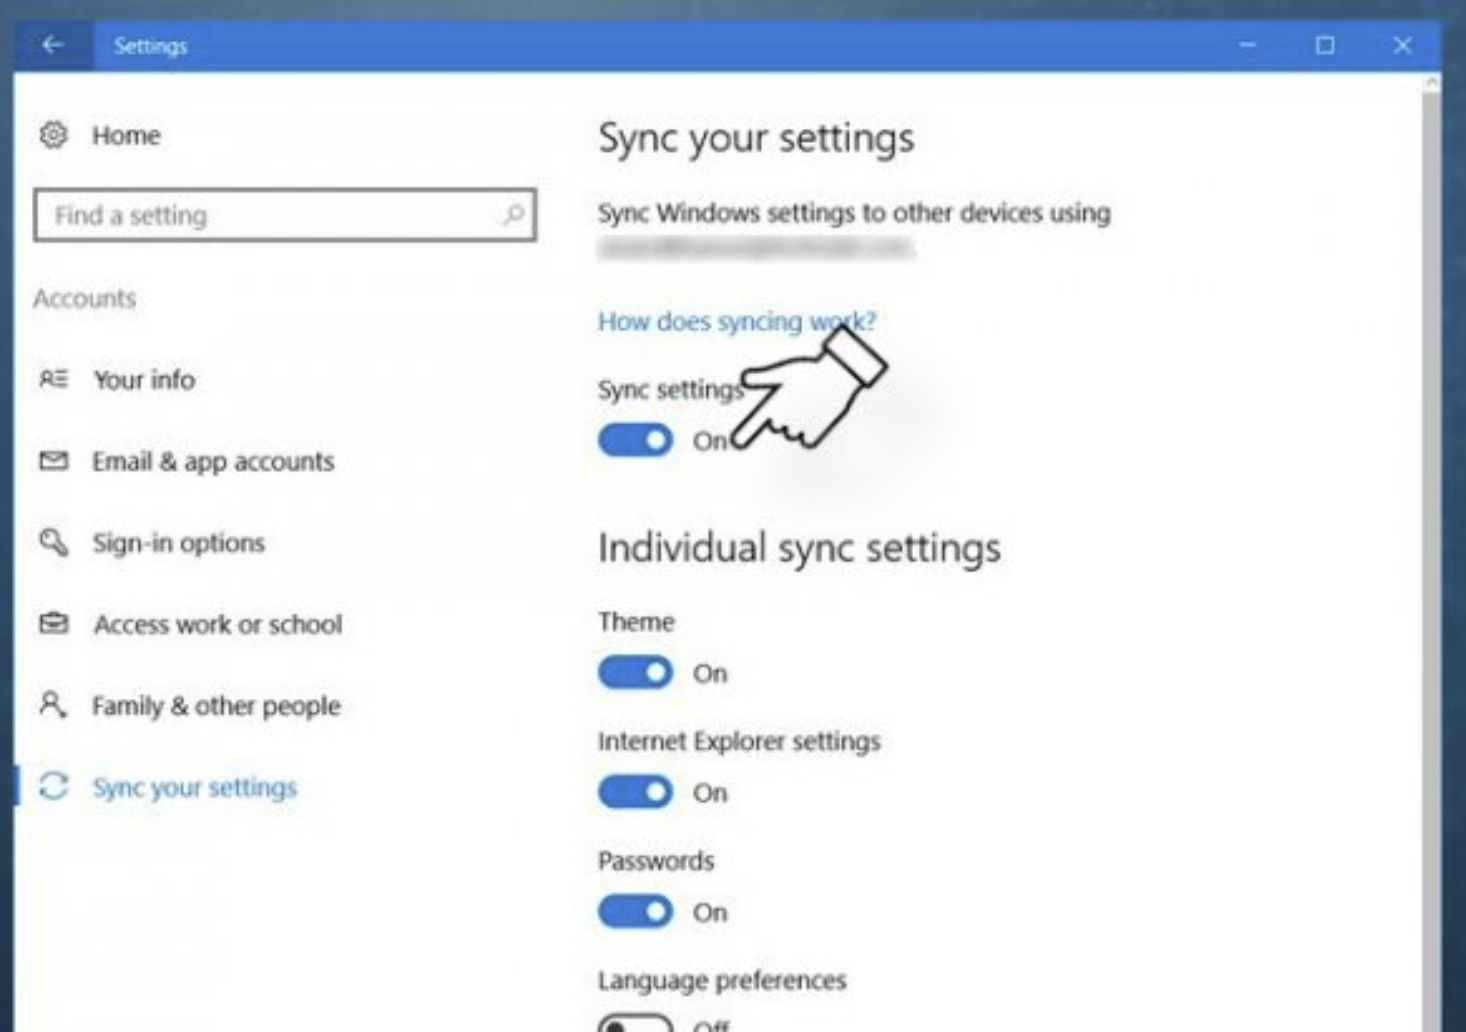 Toggle on the Sync settings option, and whatever you want to sync.